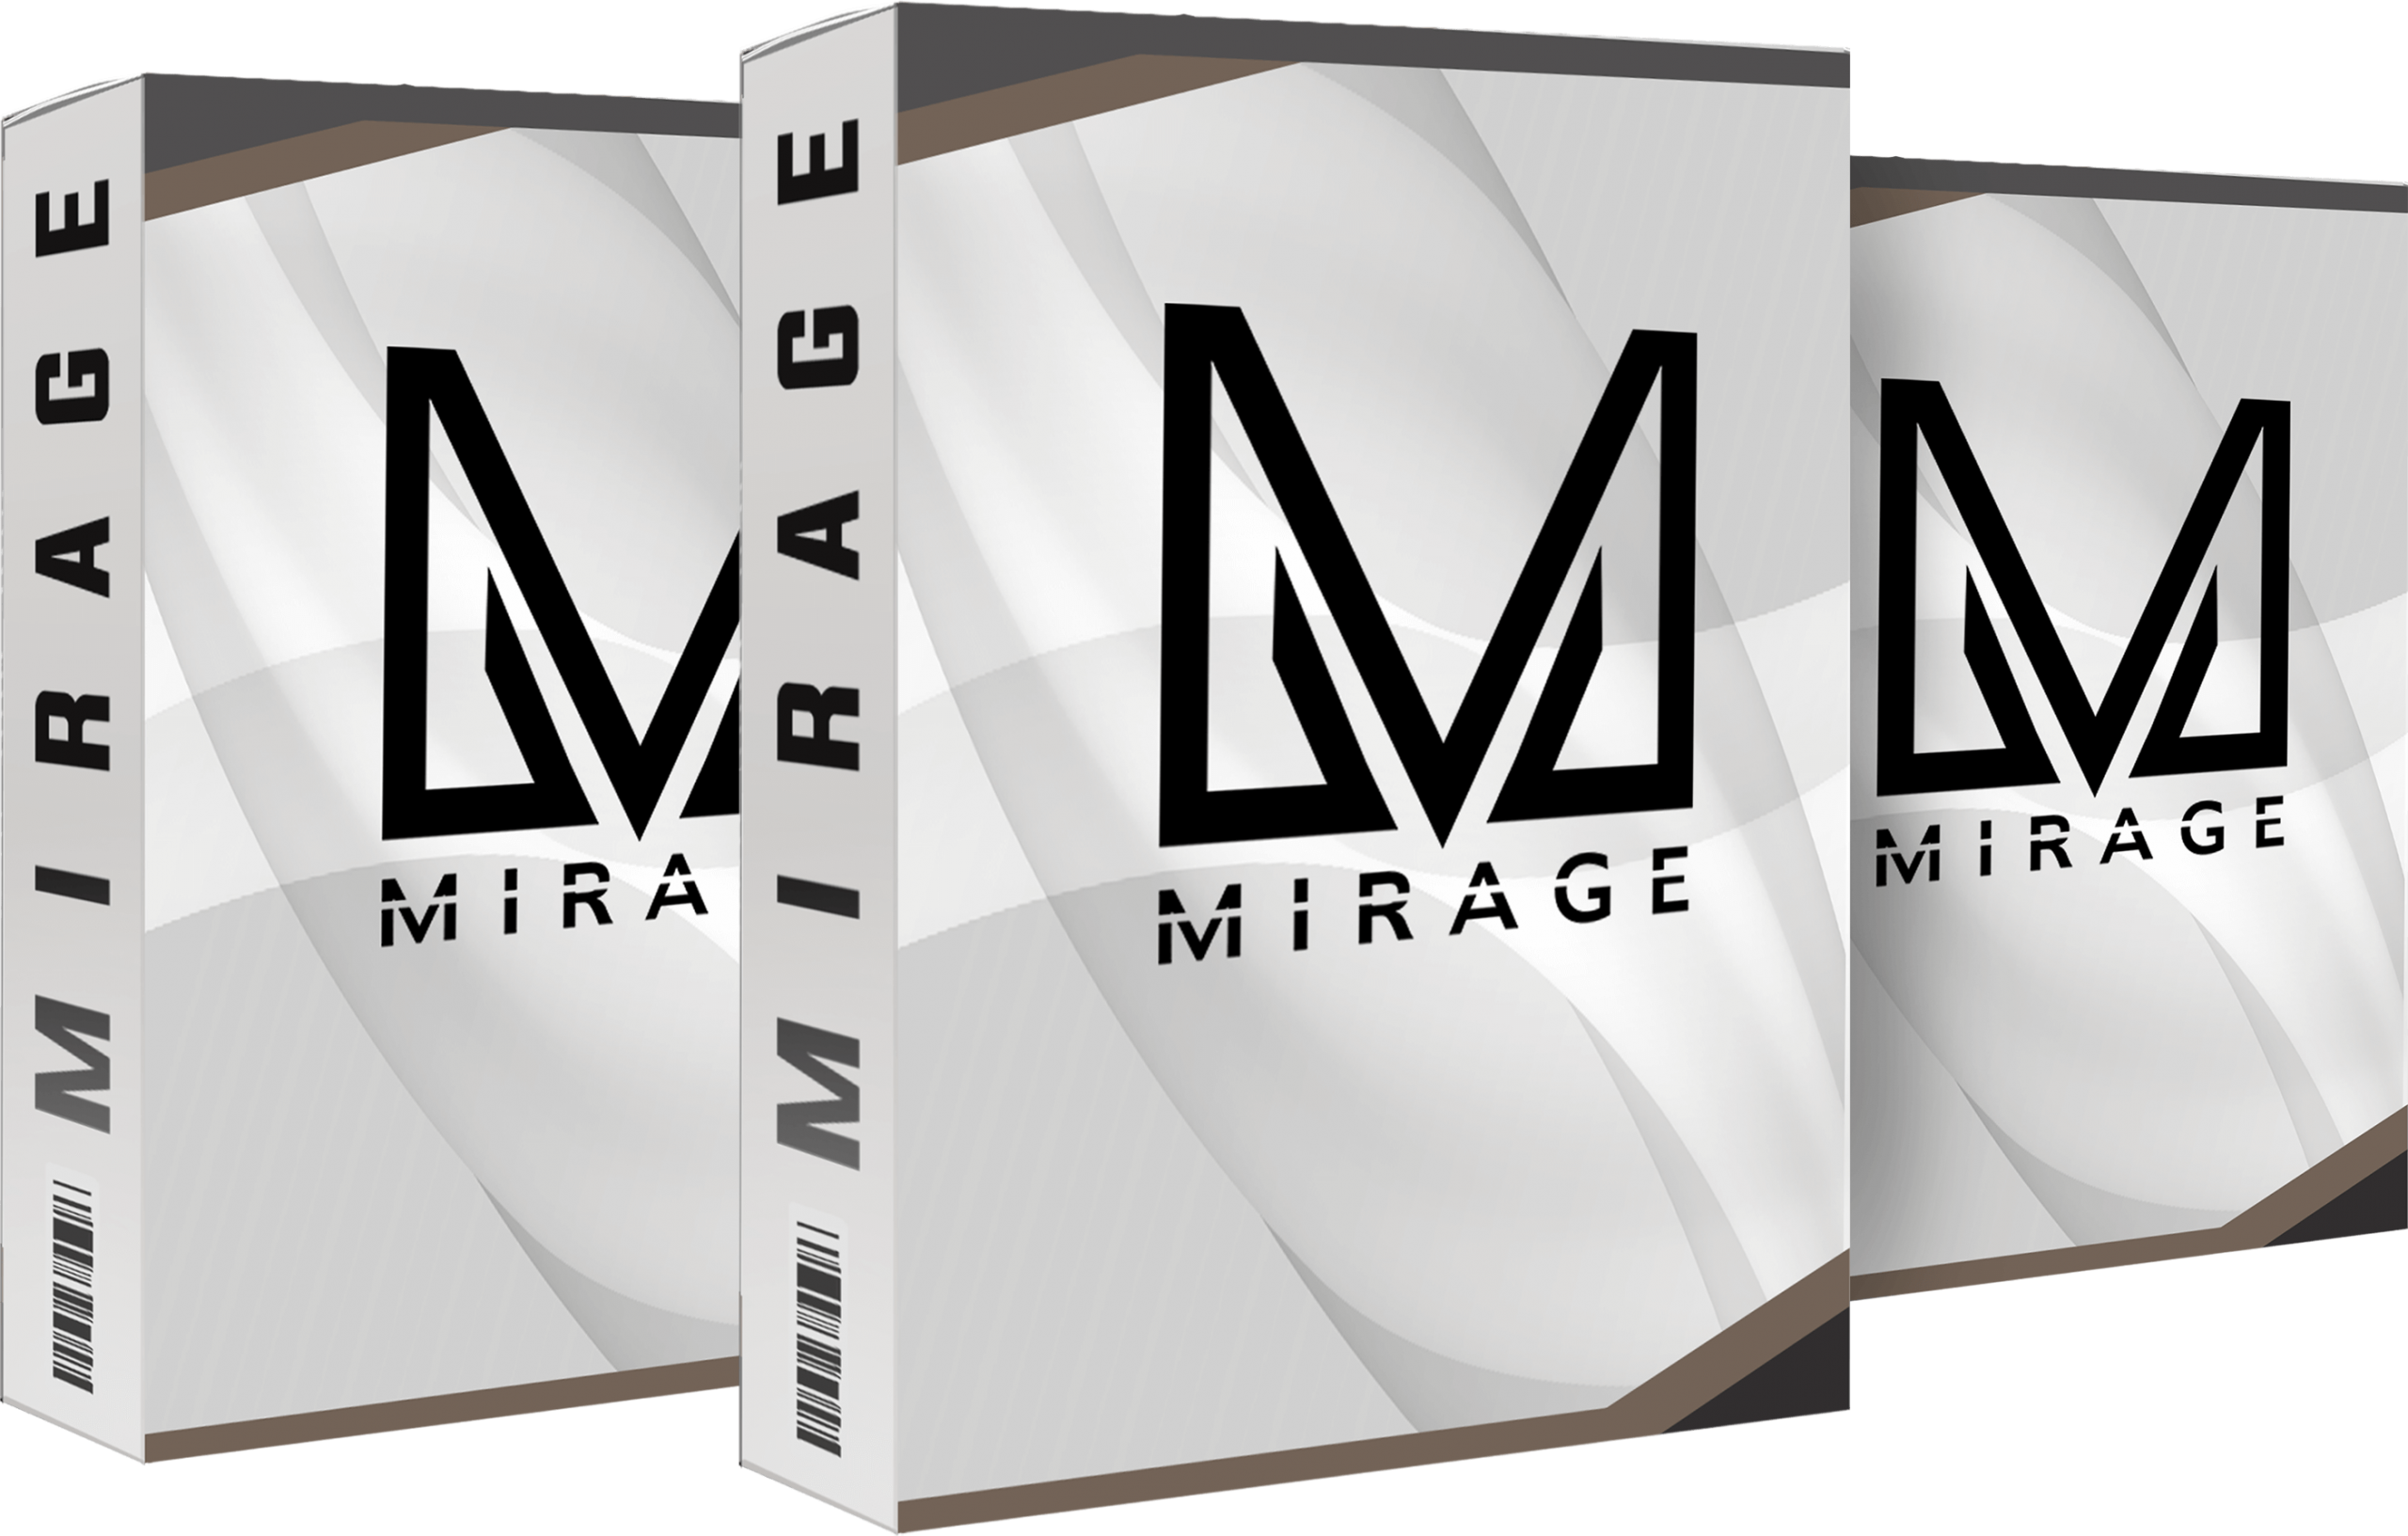 Mirage-Review-1